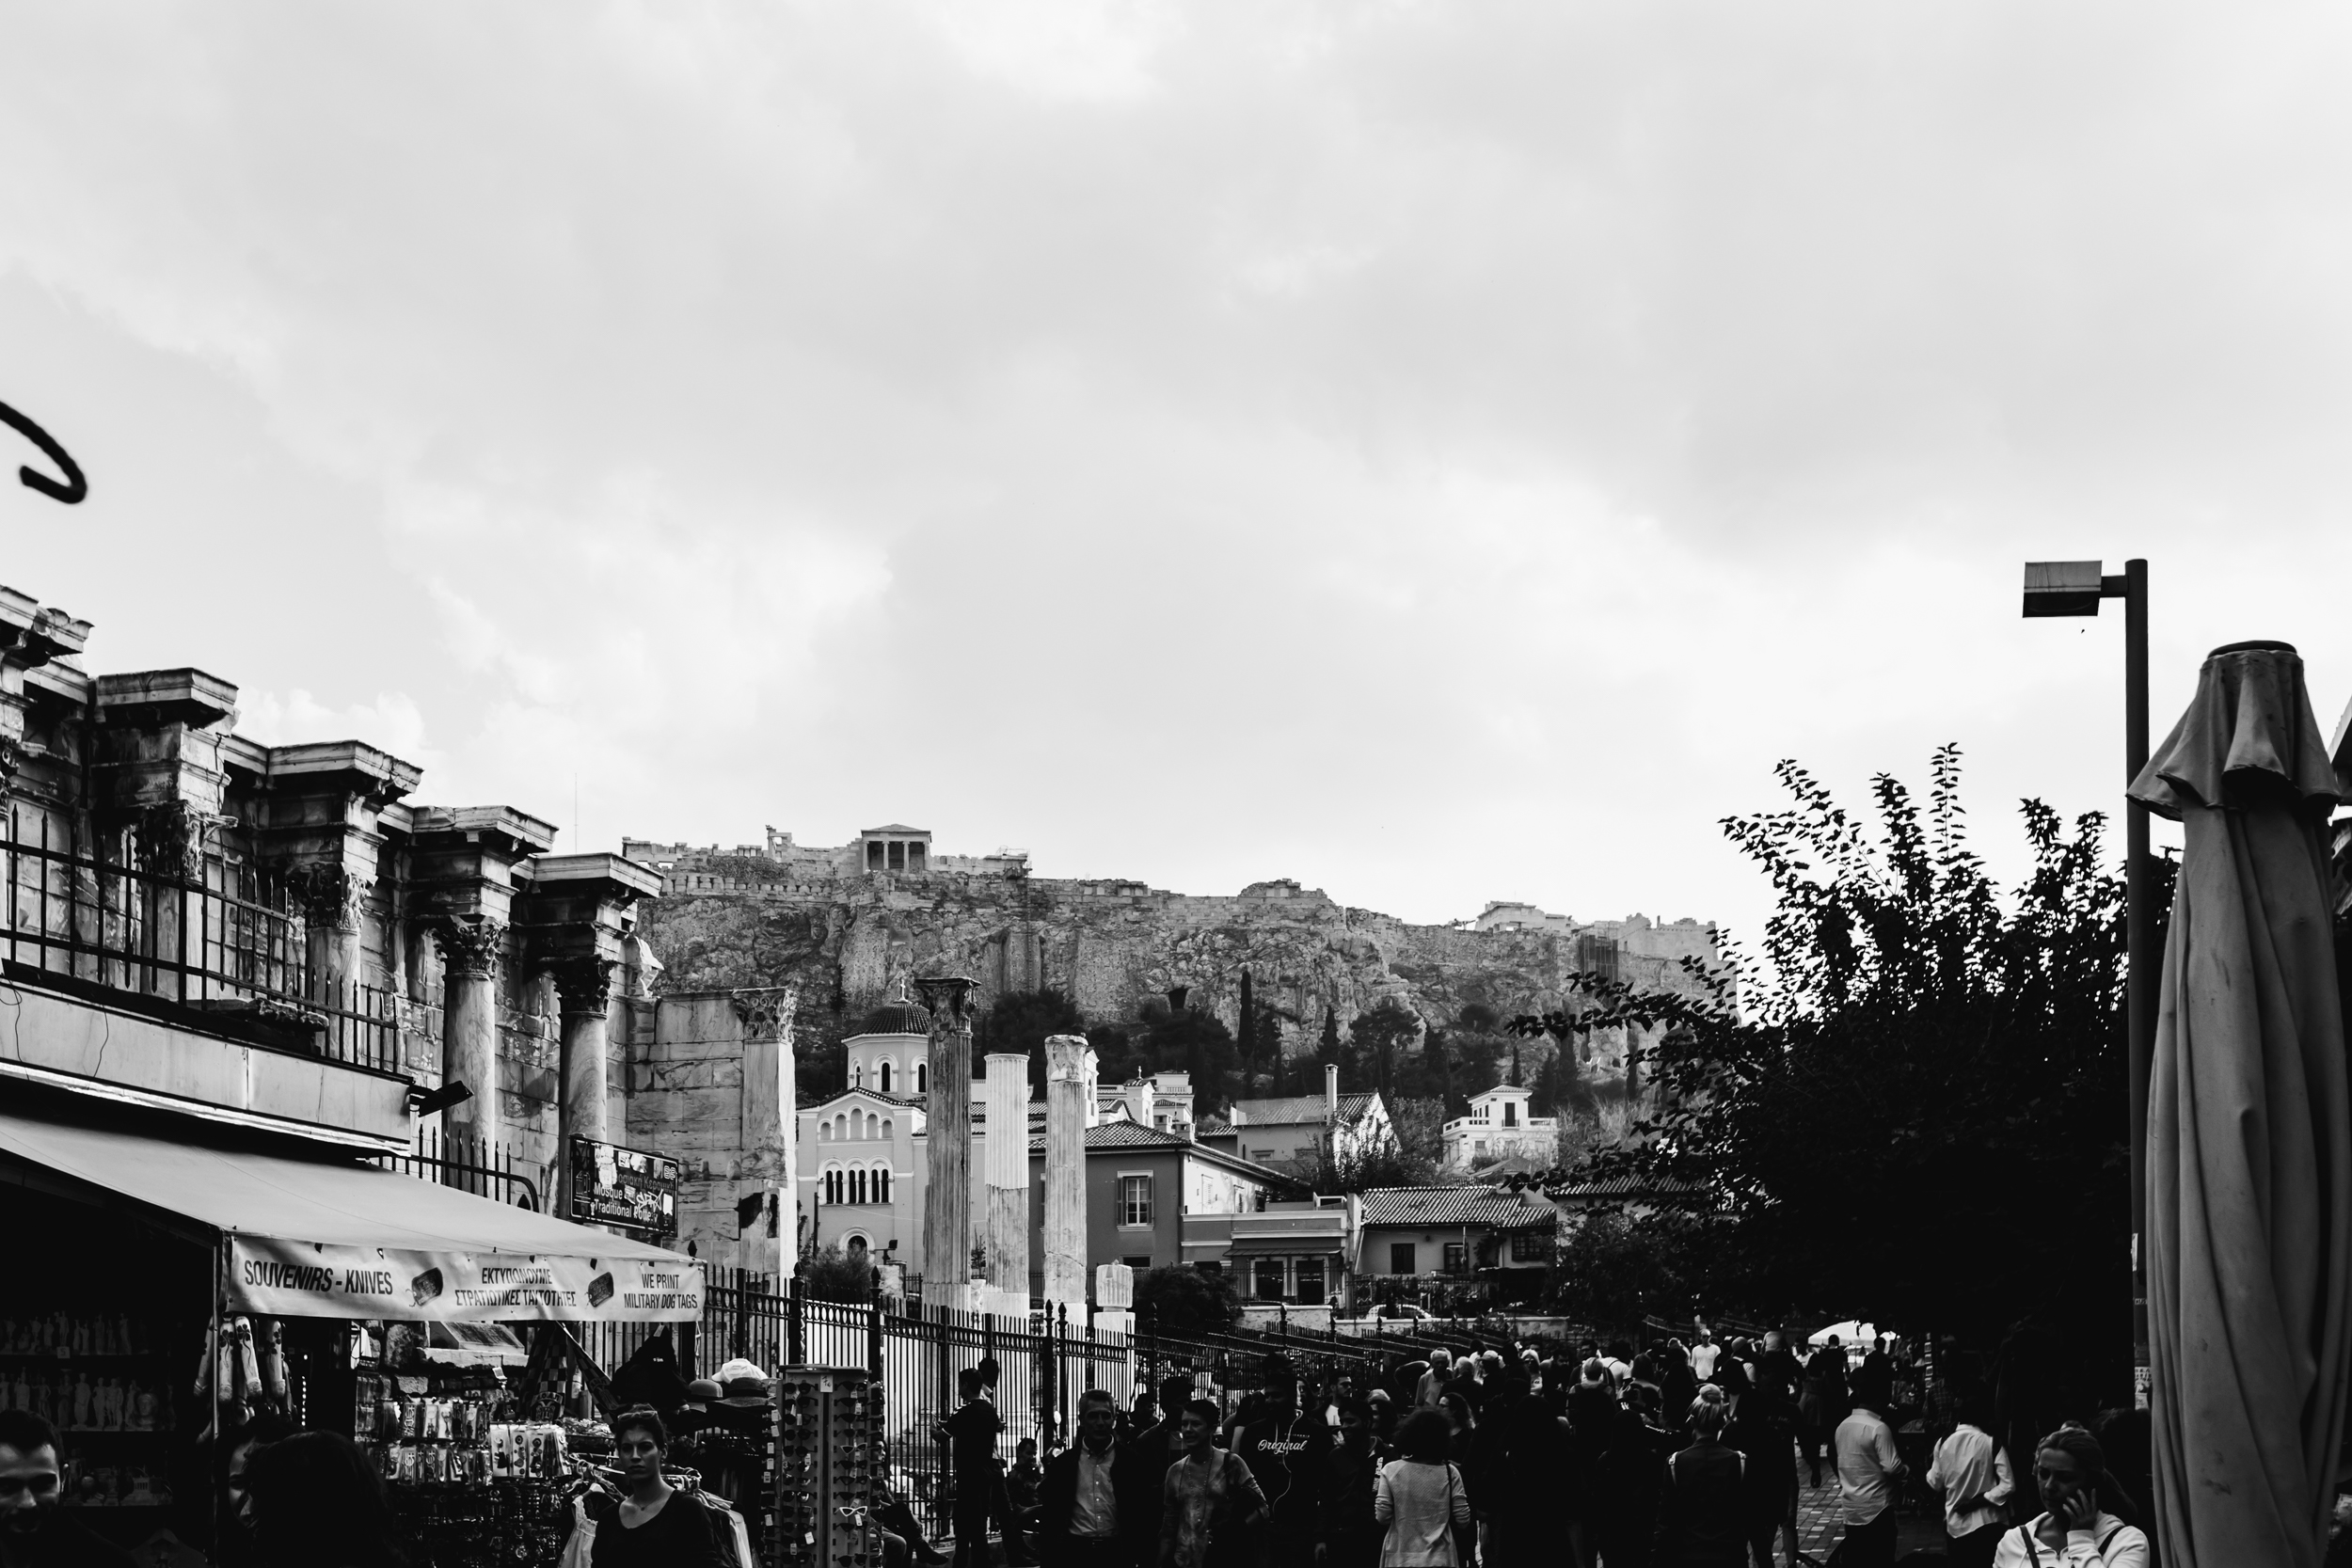 Acropolis overlooking the vintage street markets